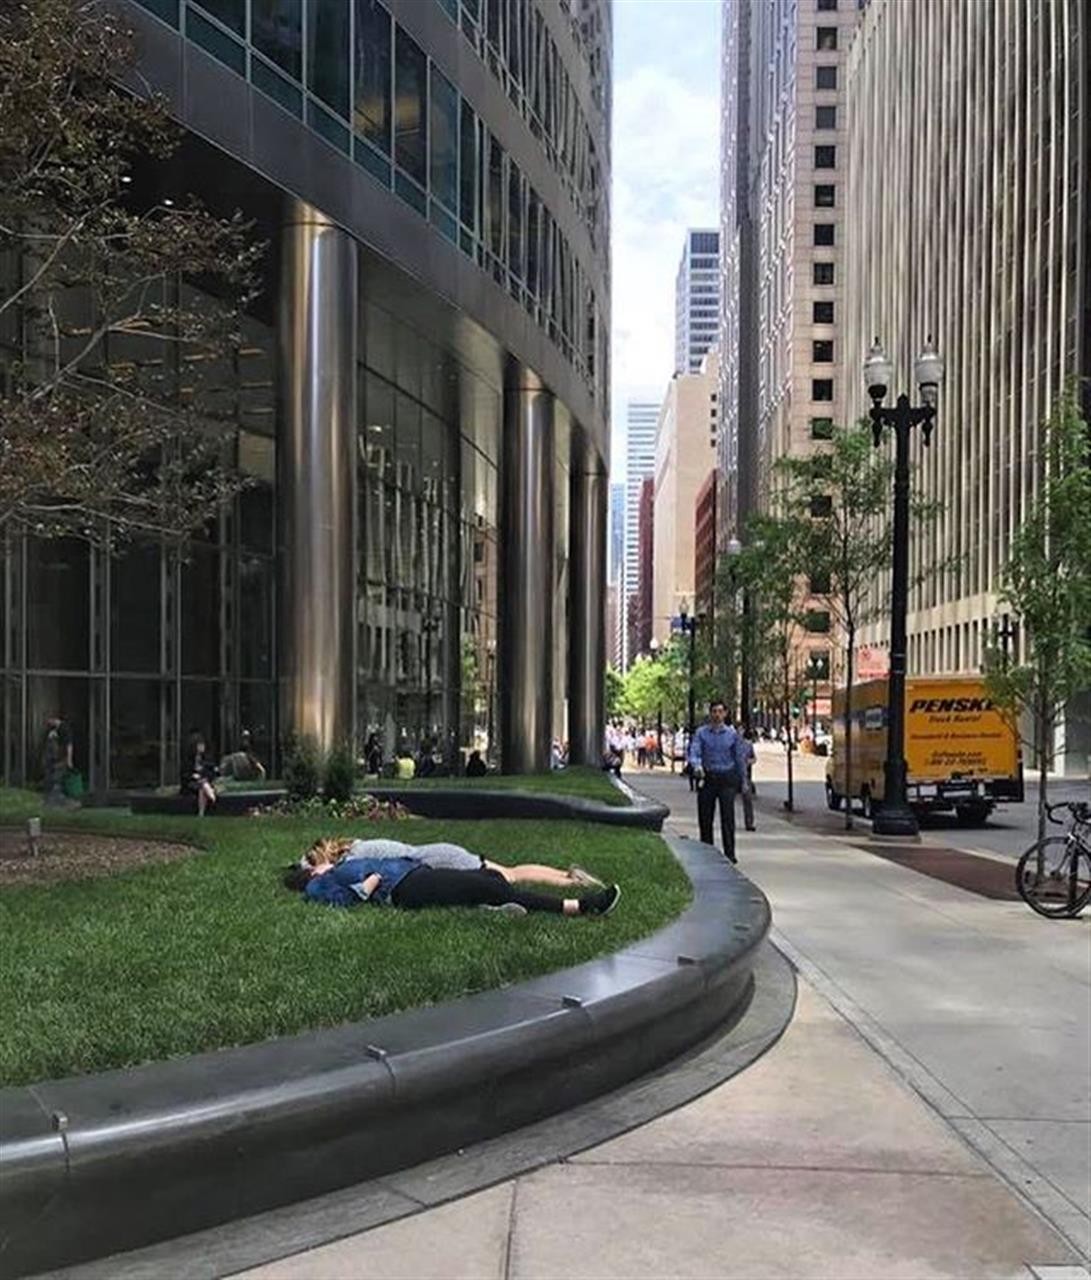 #tbt to going outside during lunch without coats on. #bestdays #chicagosummer #chicago #leadingrelocal #nap #napinthesun #loop #bairdwarner